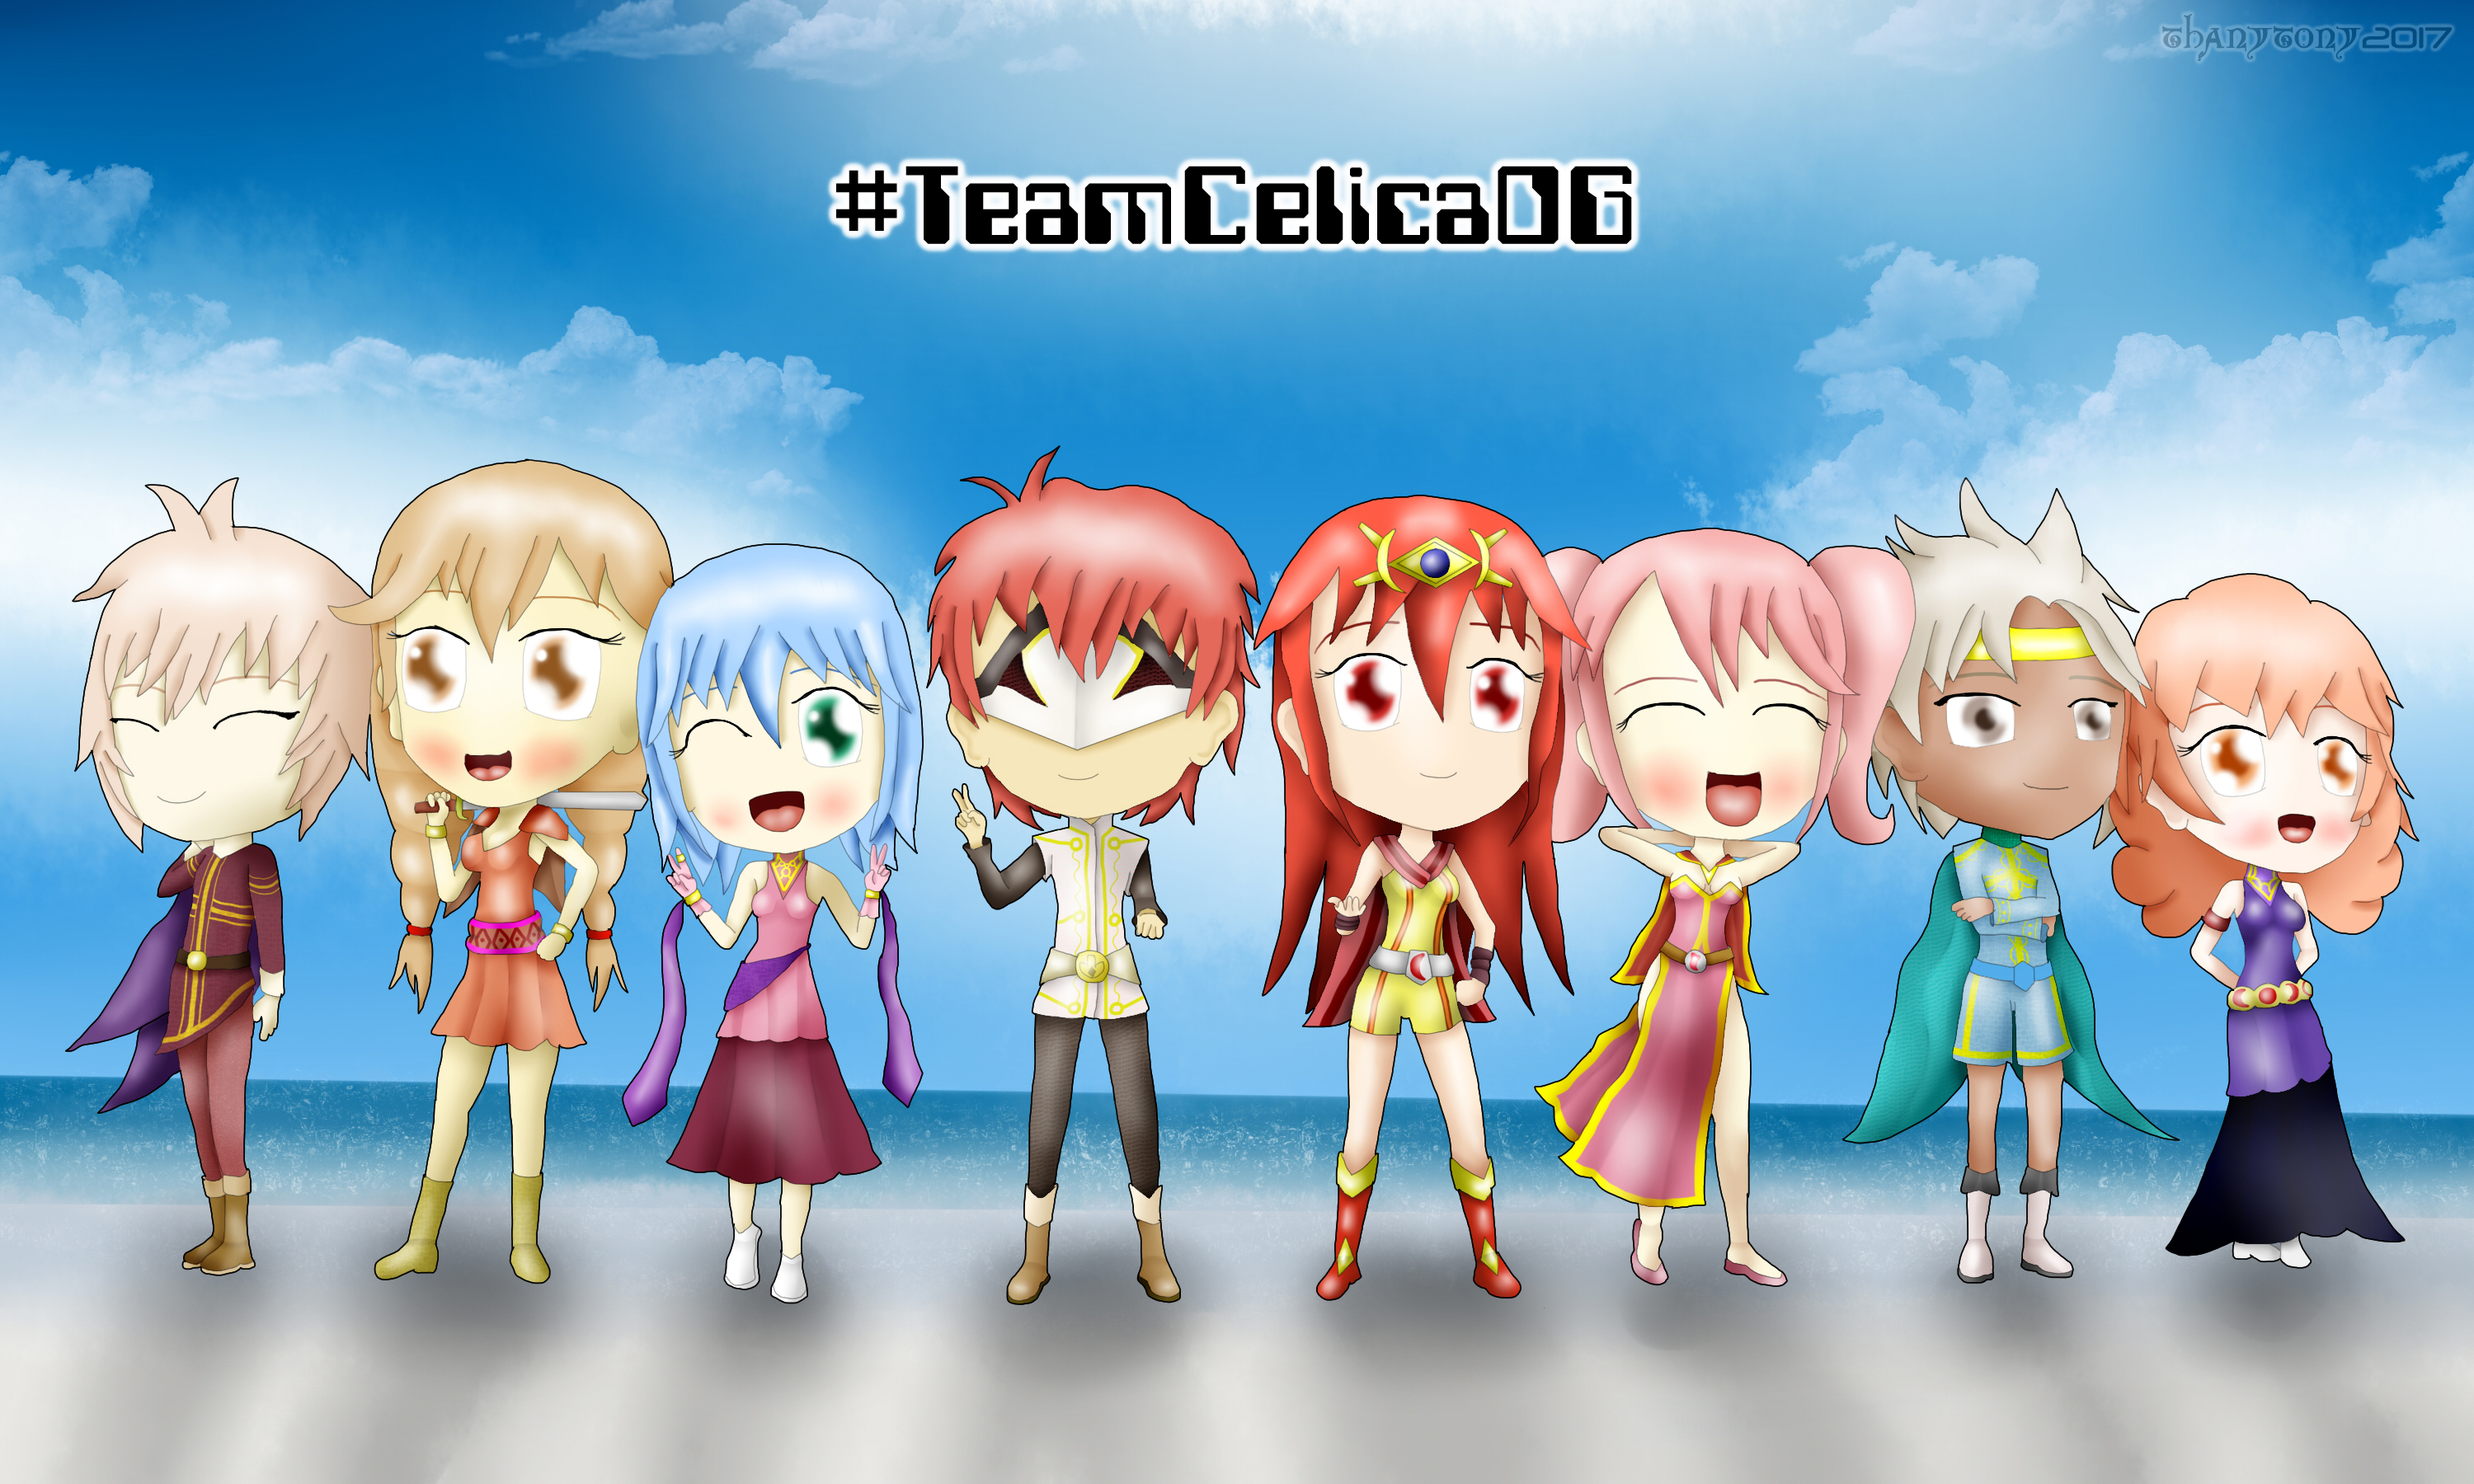 #TeamCelicaOG by ThanyTony